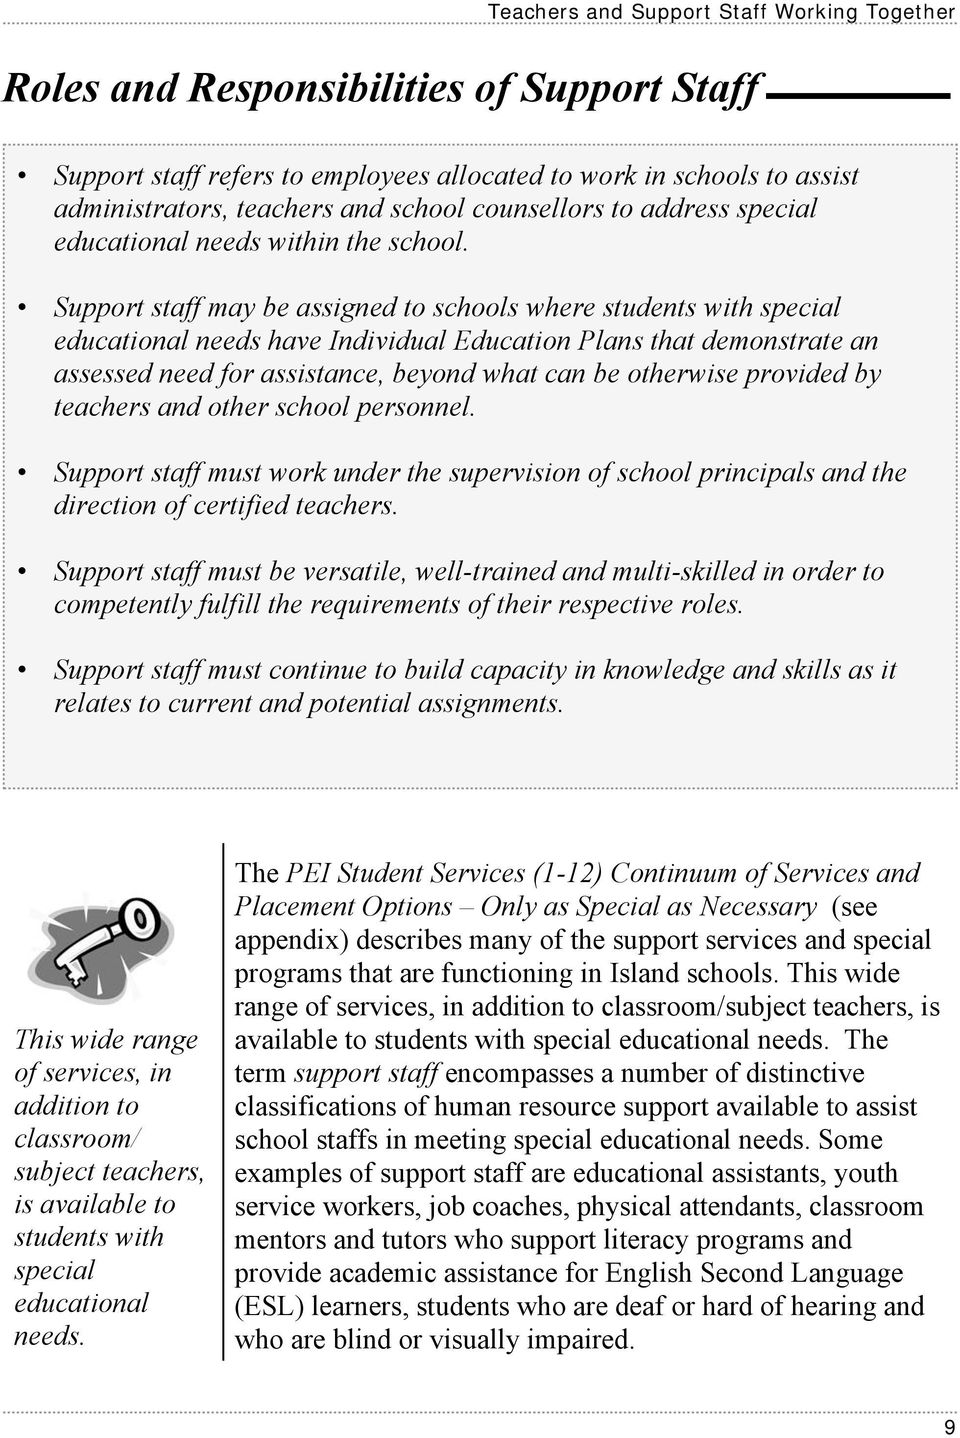 Support staff may be assigned to schools where students with special educational needs have Individual Education Plans that demonstrate an assessed need for assistance, beyond what can be otherwise